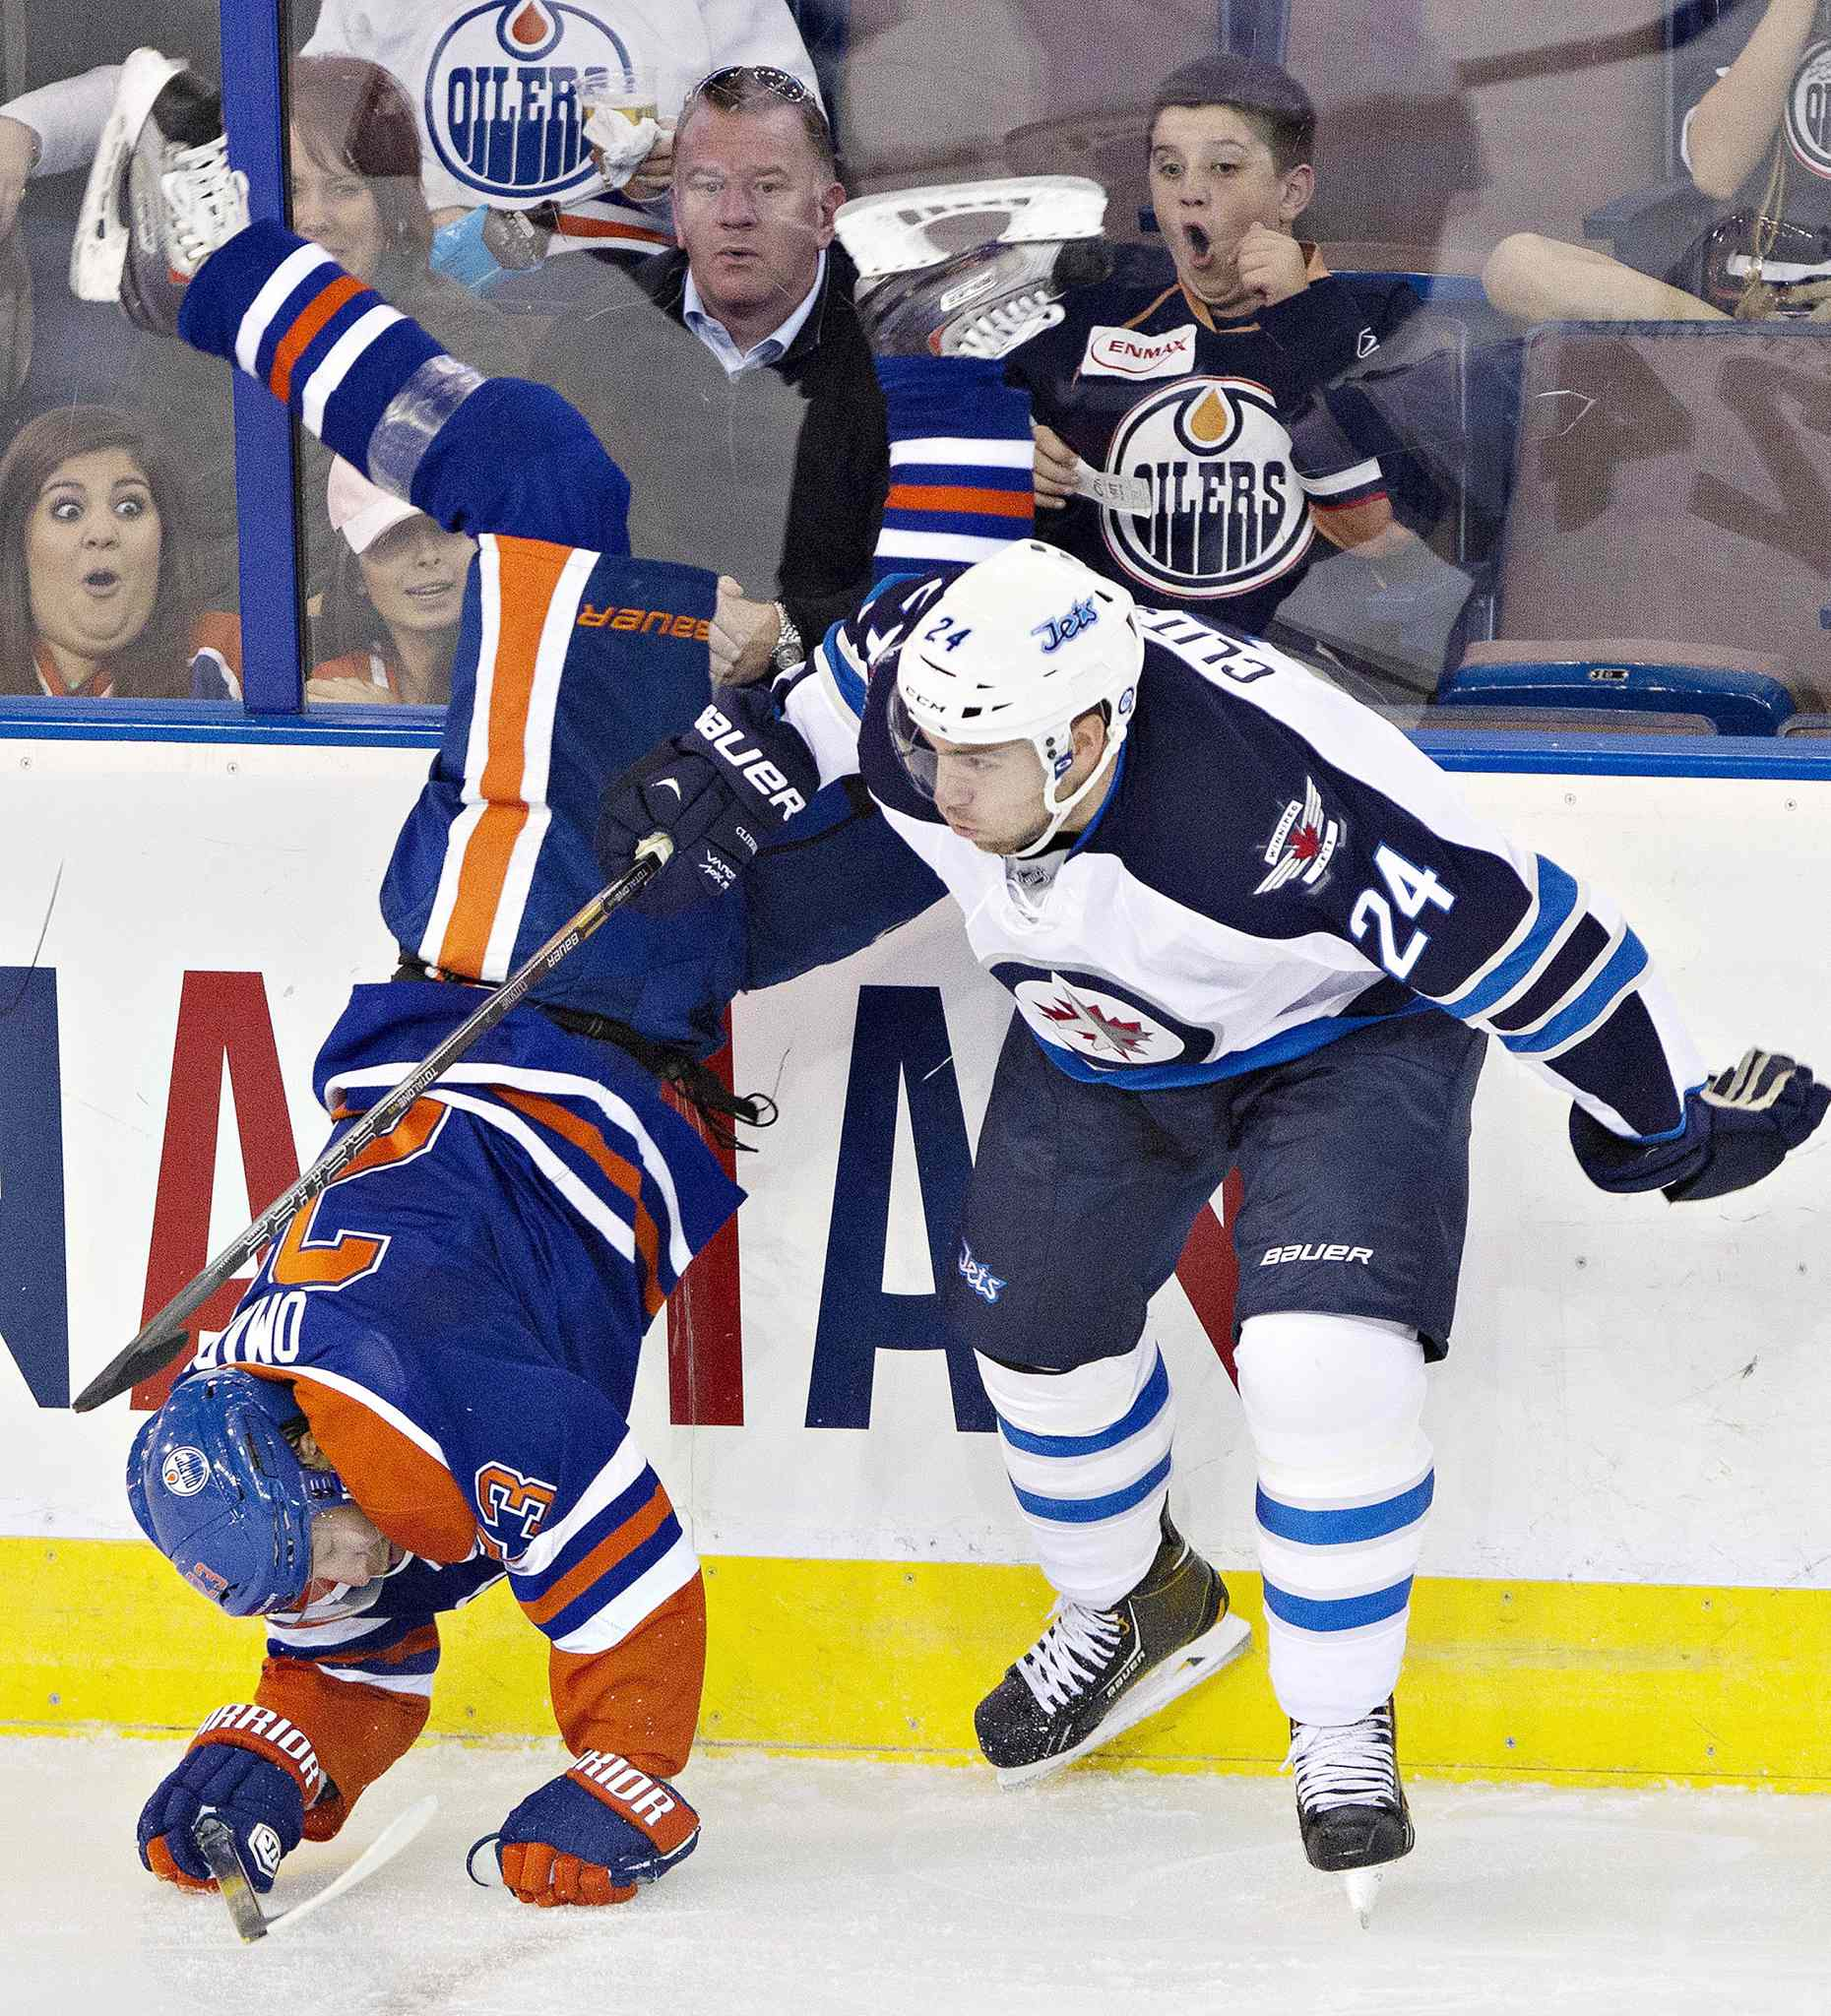 Winnipeg Jets defenceman Grant Clitsome (24) checks Edmonton Oilers forward Linus Omark (23) during the third period.